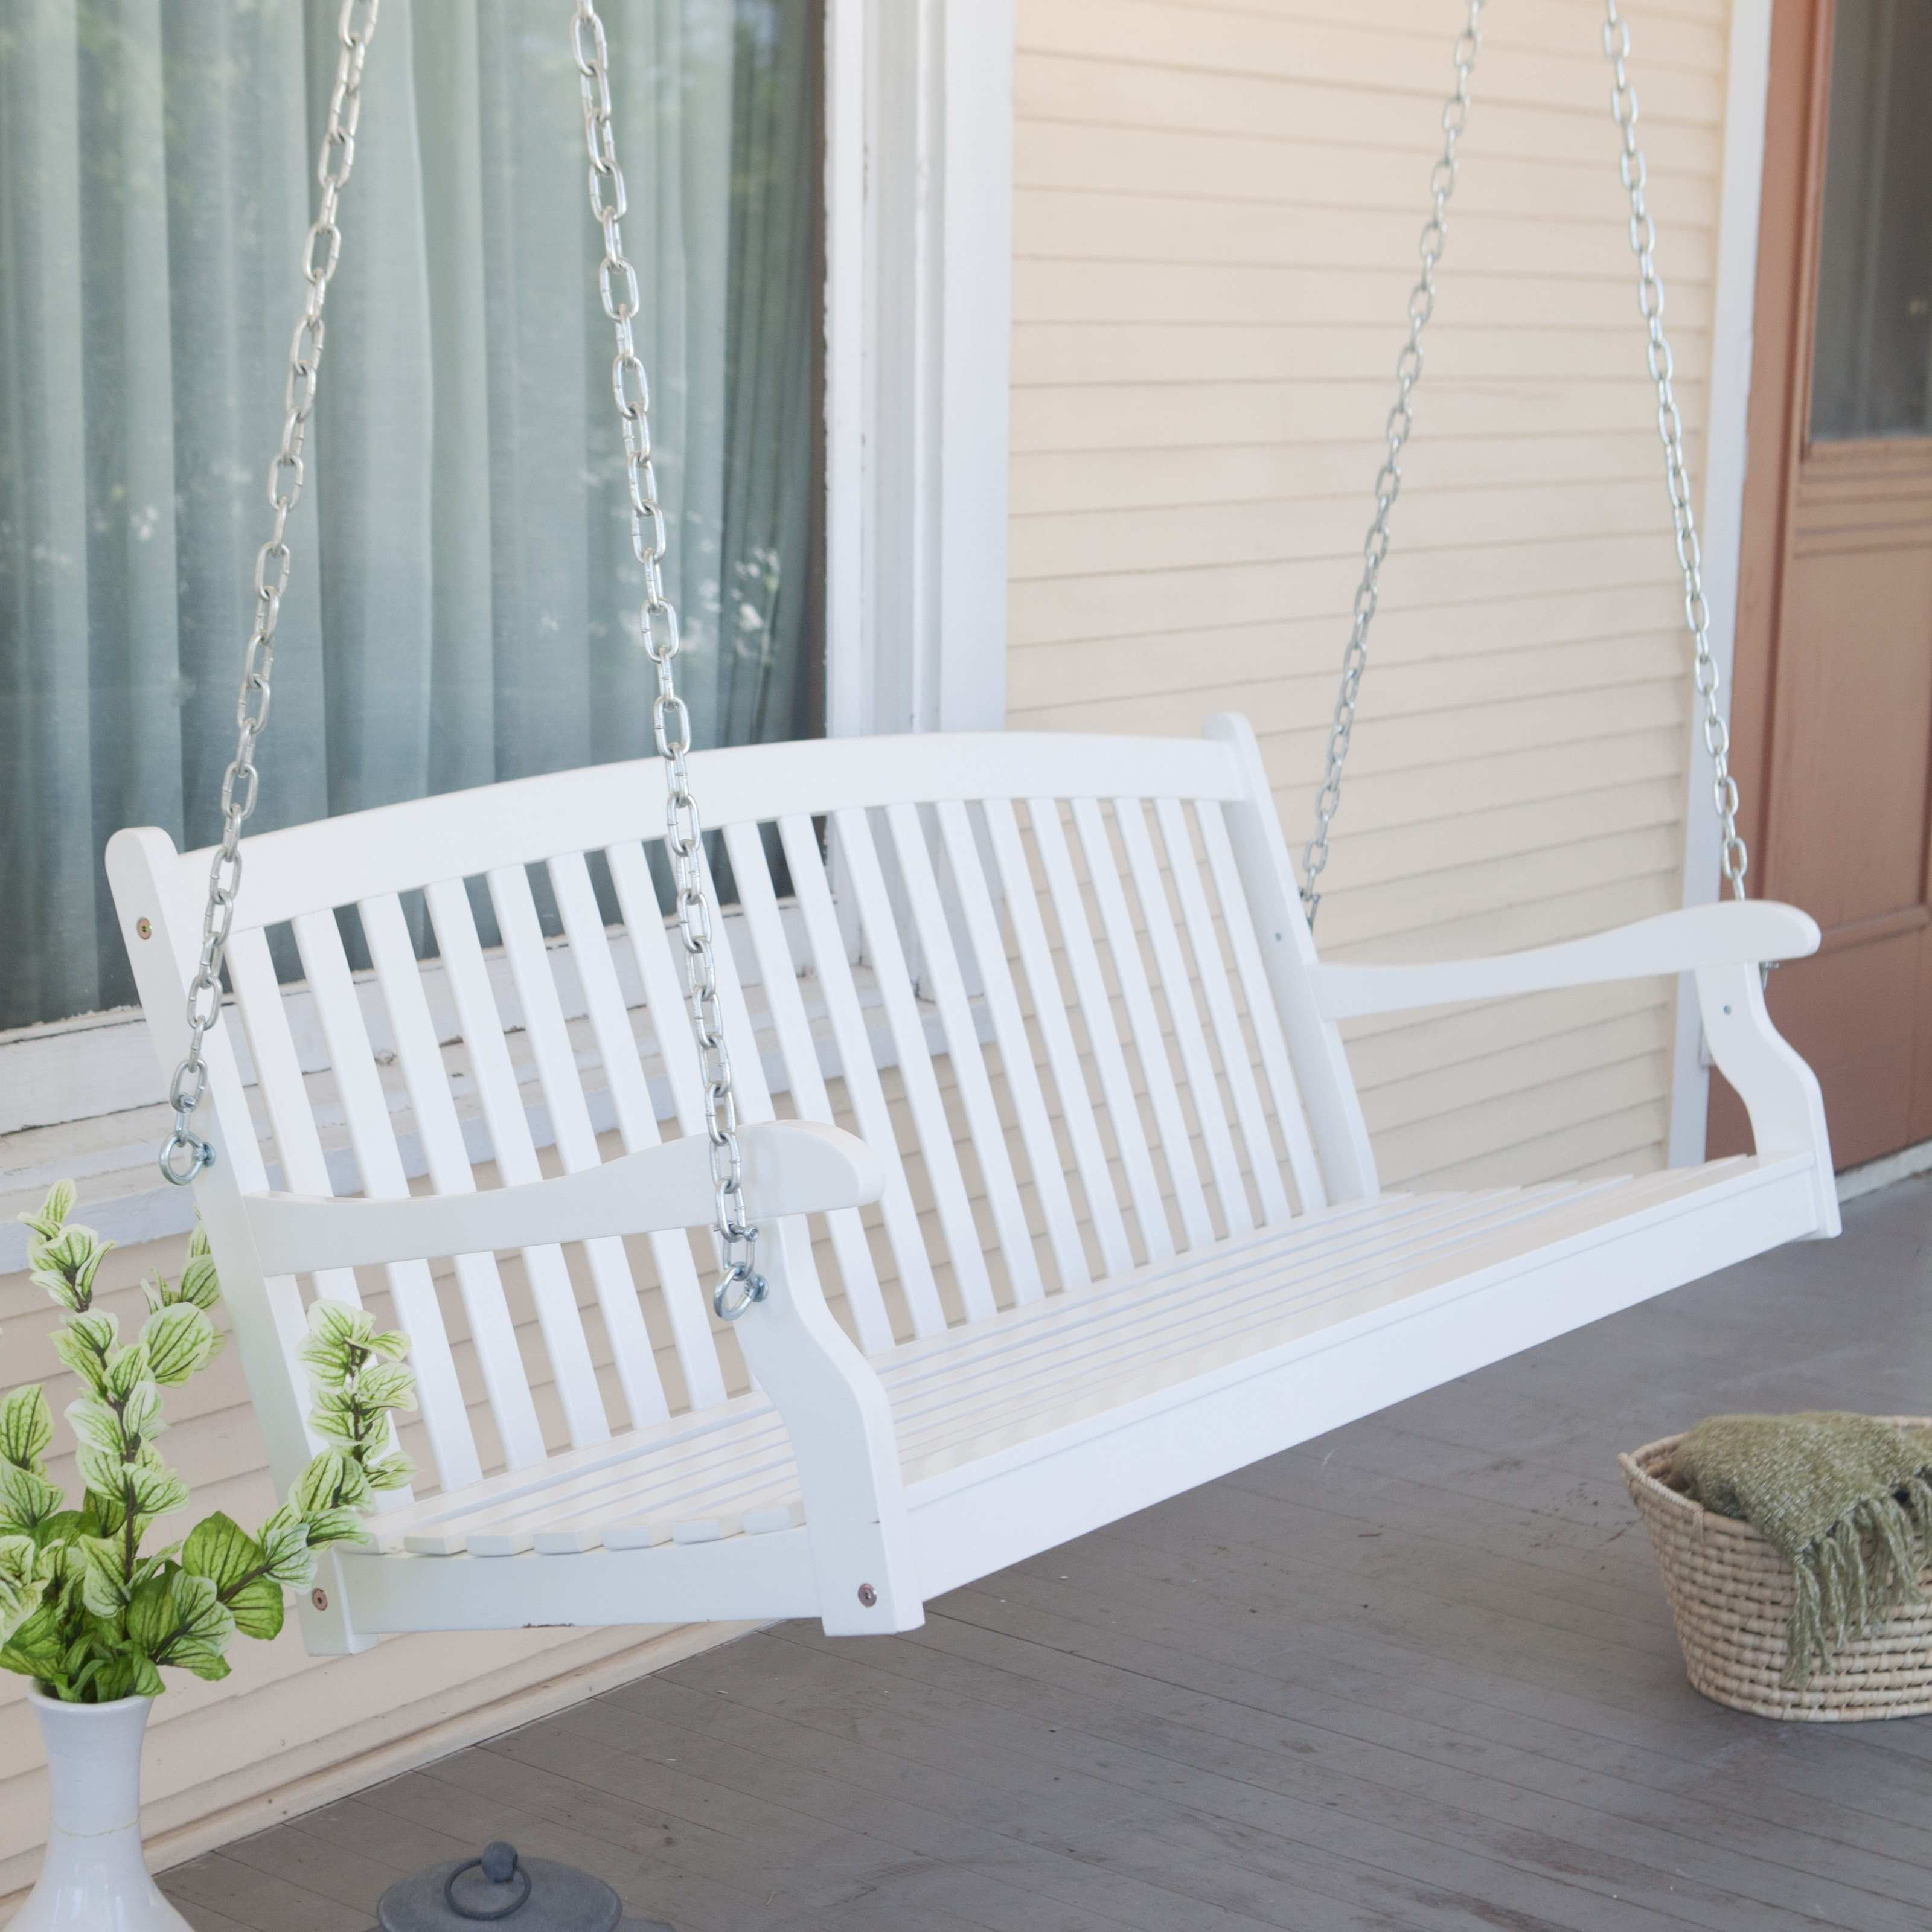 Porch Swing Hanging Hardware